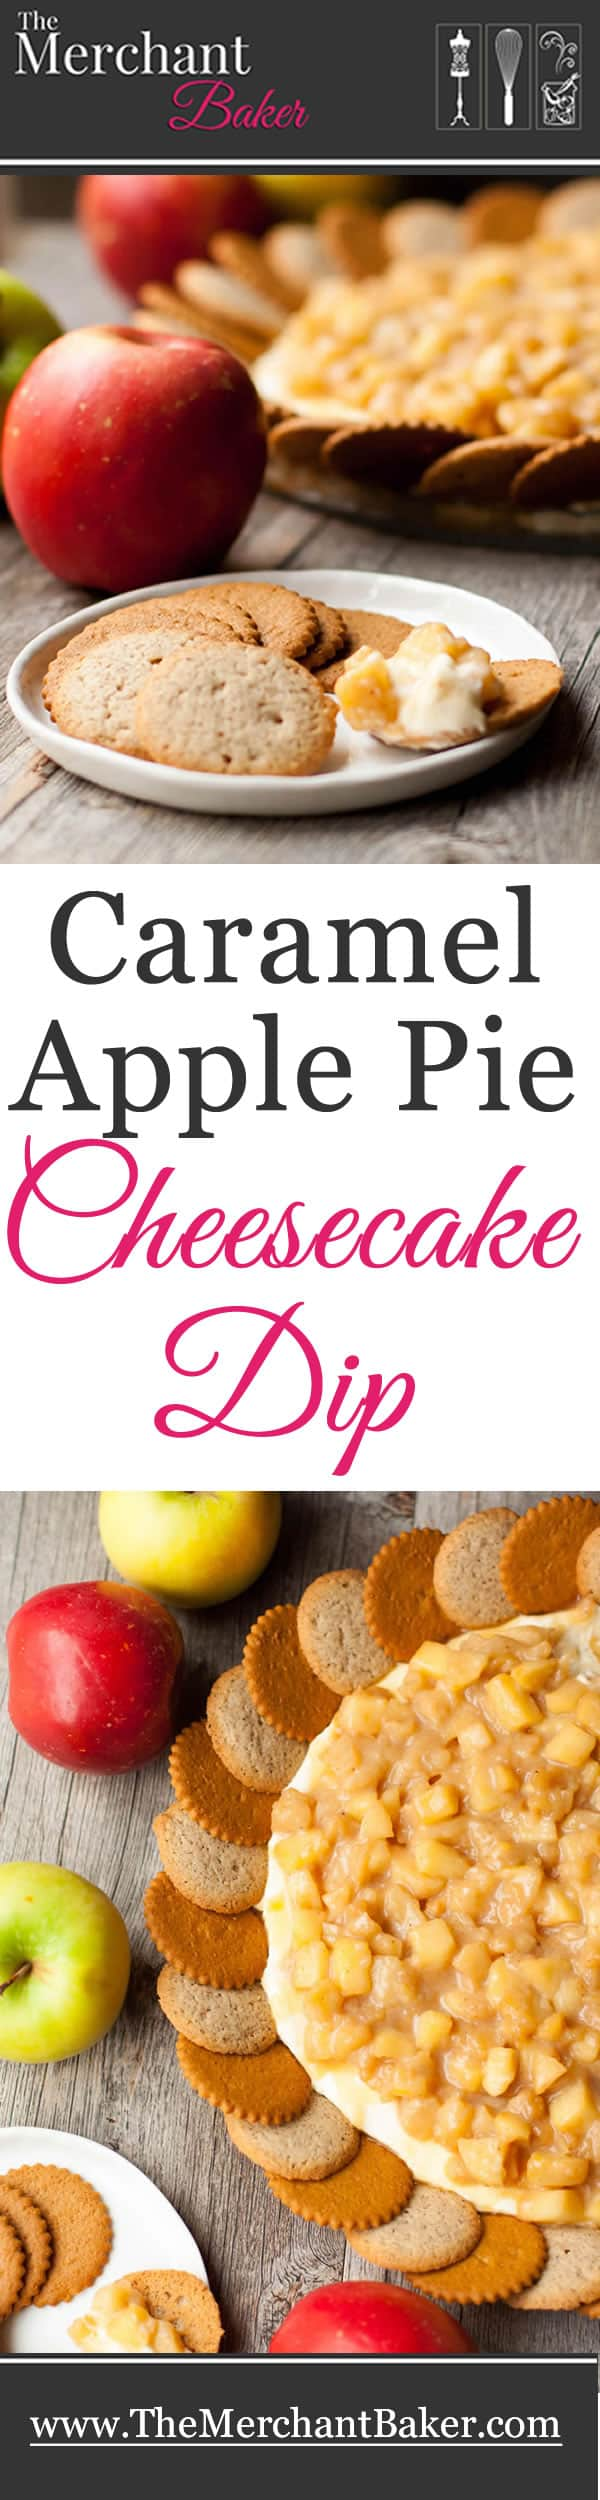 Caramel Apple Pie Cheesecake Dip